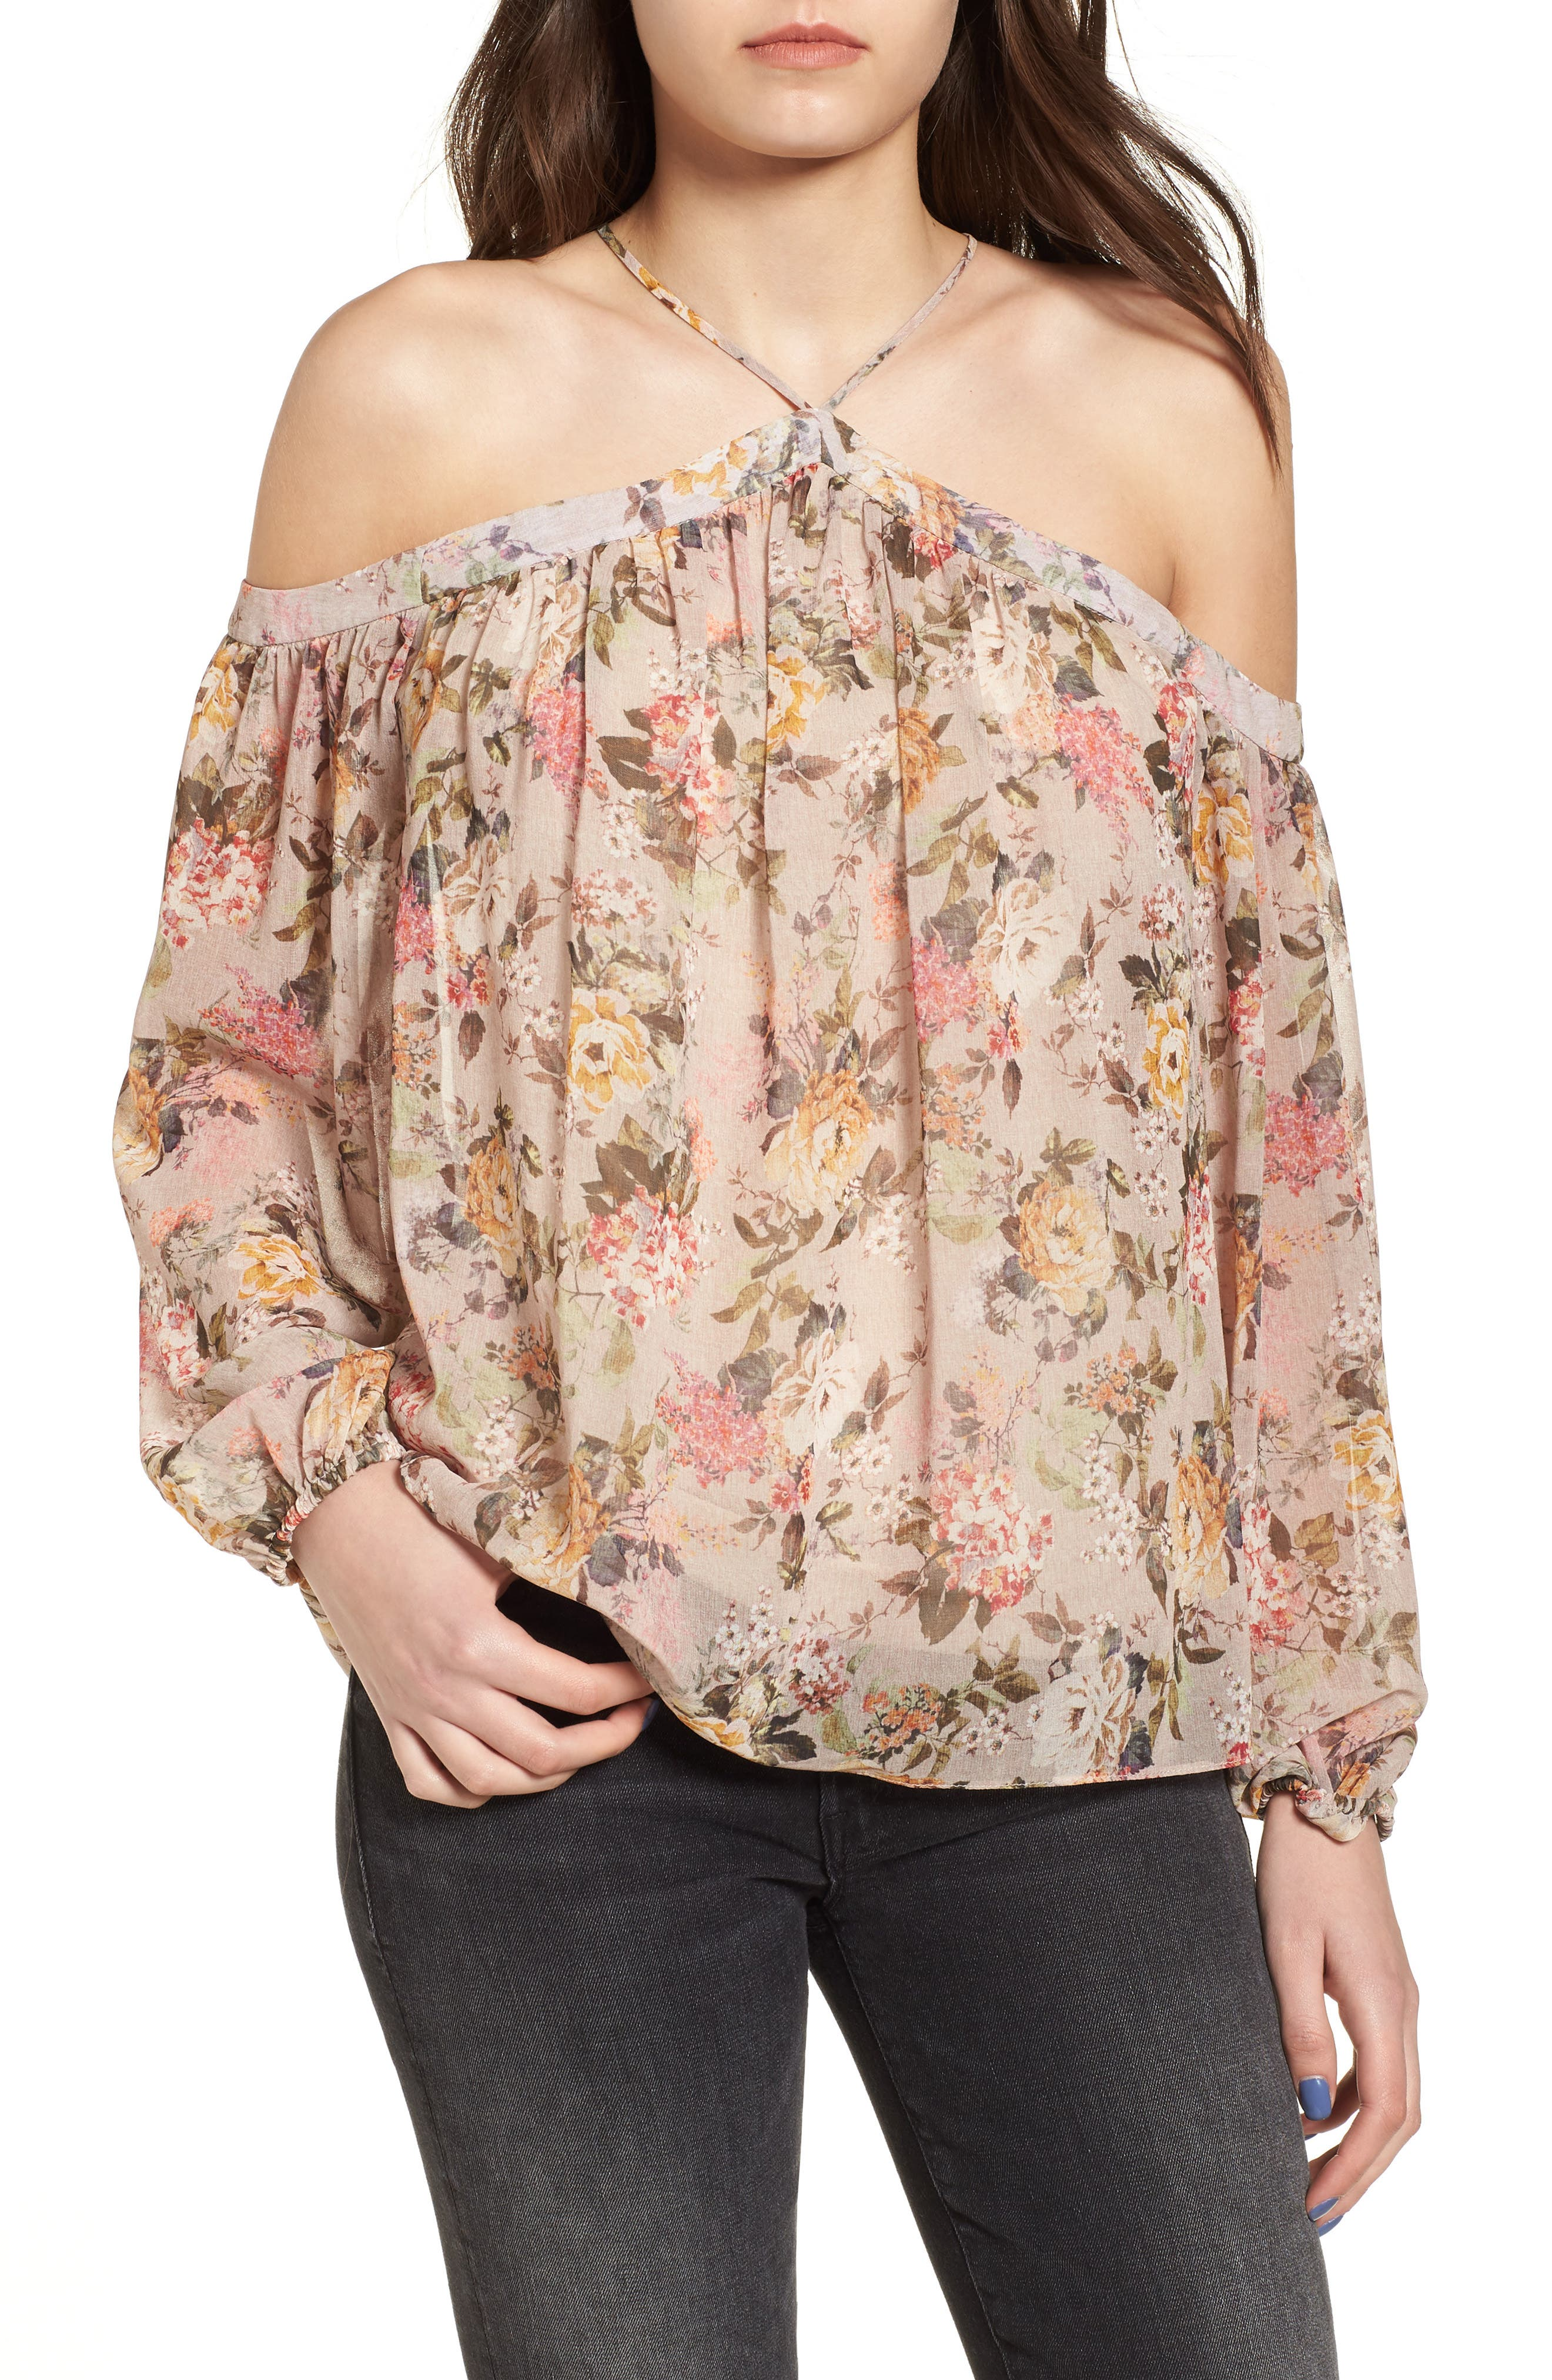 Inamorata Blouse,                         Main,                         color, Blush